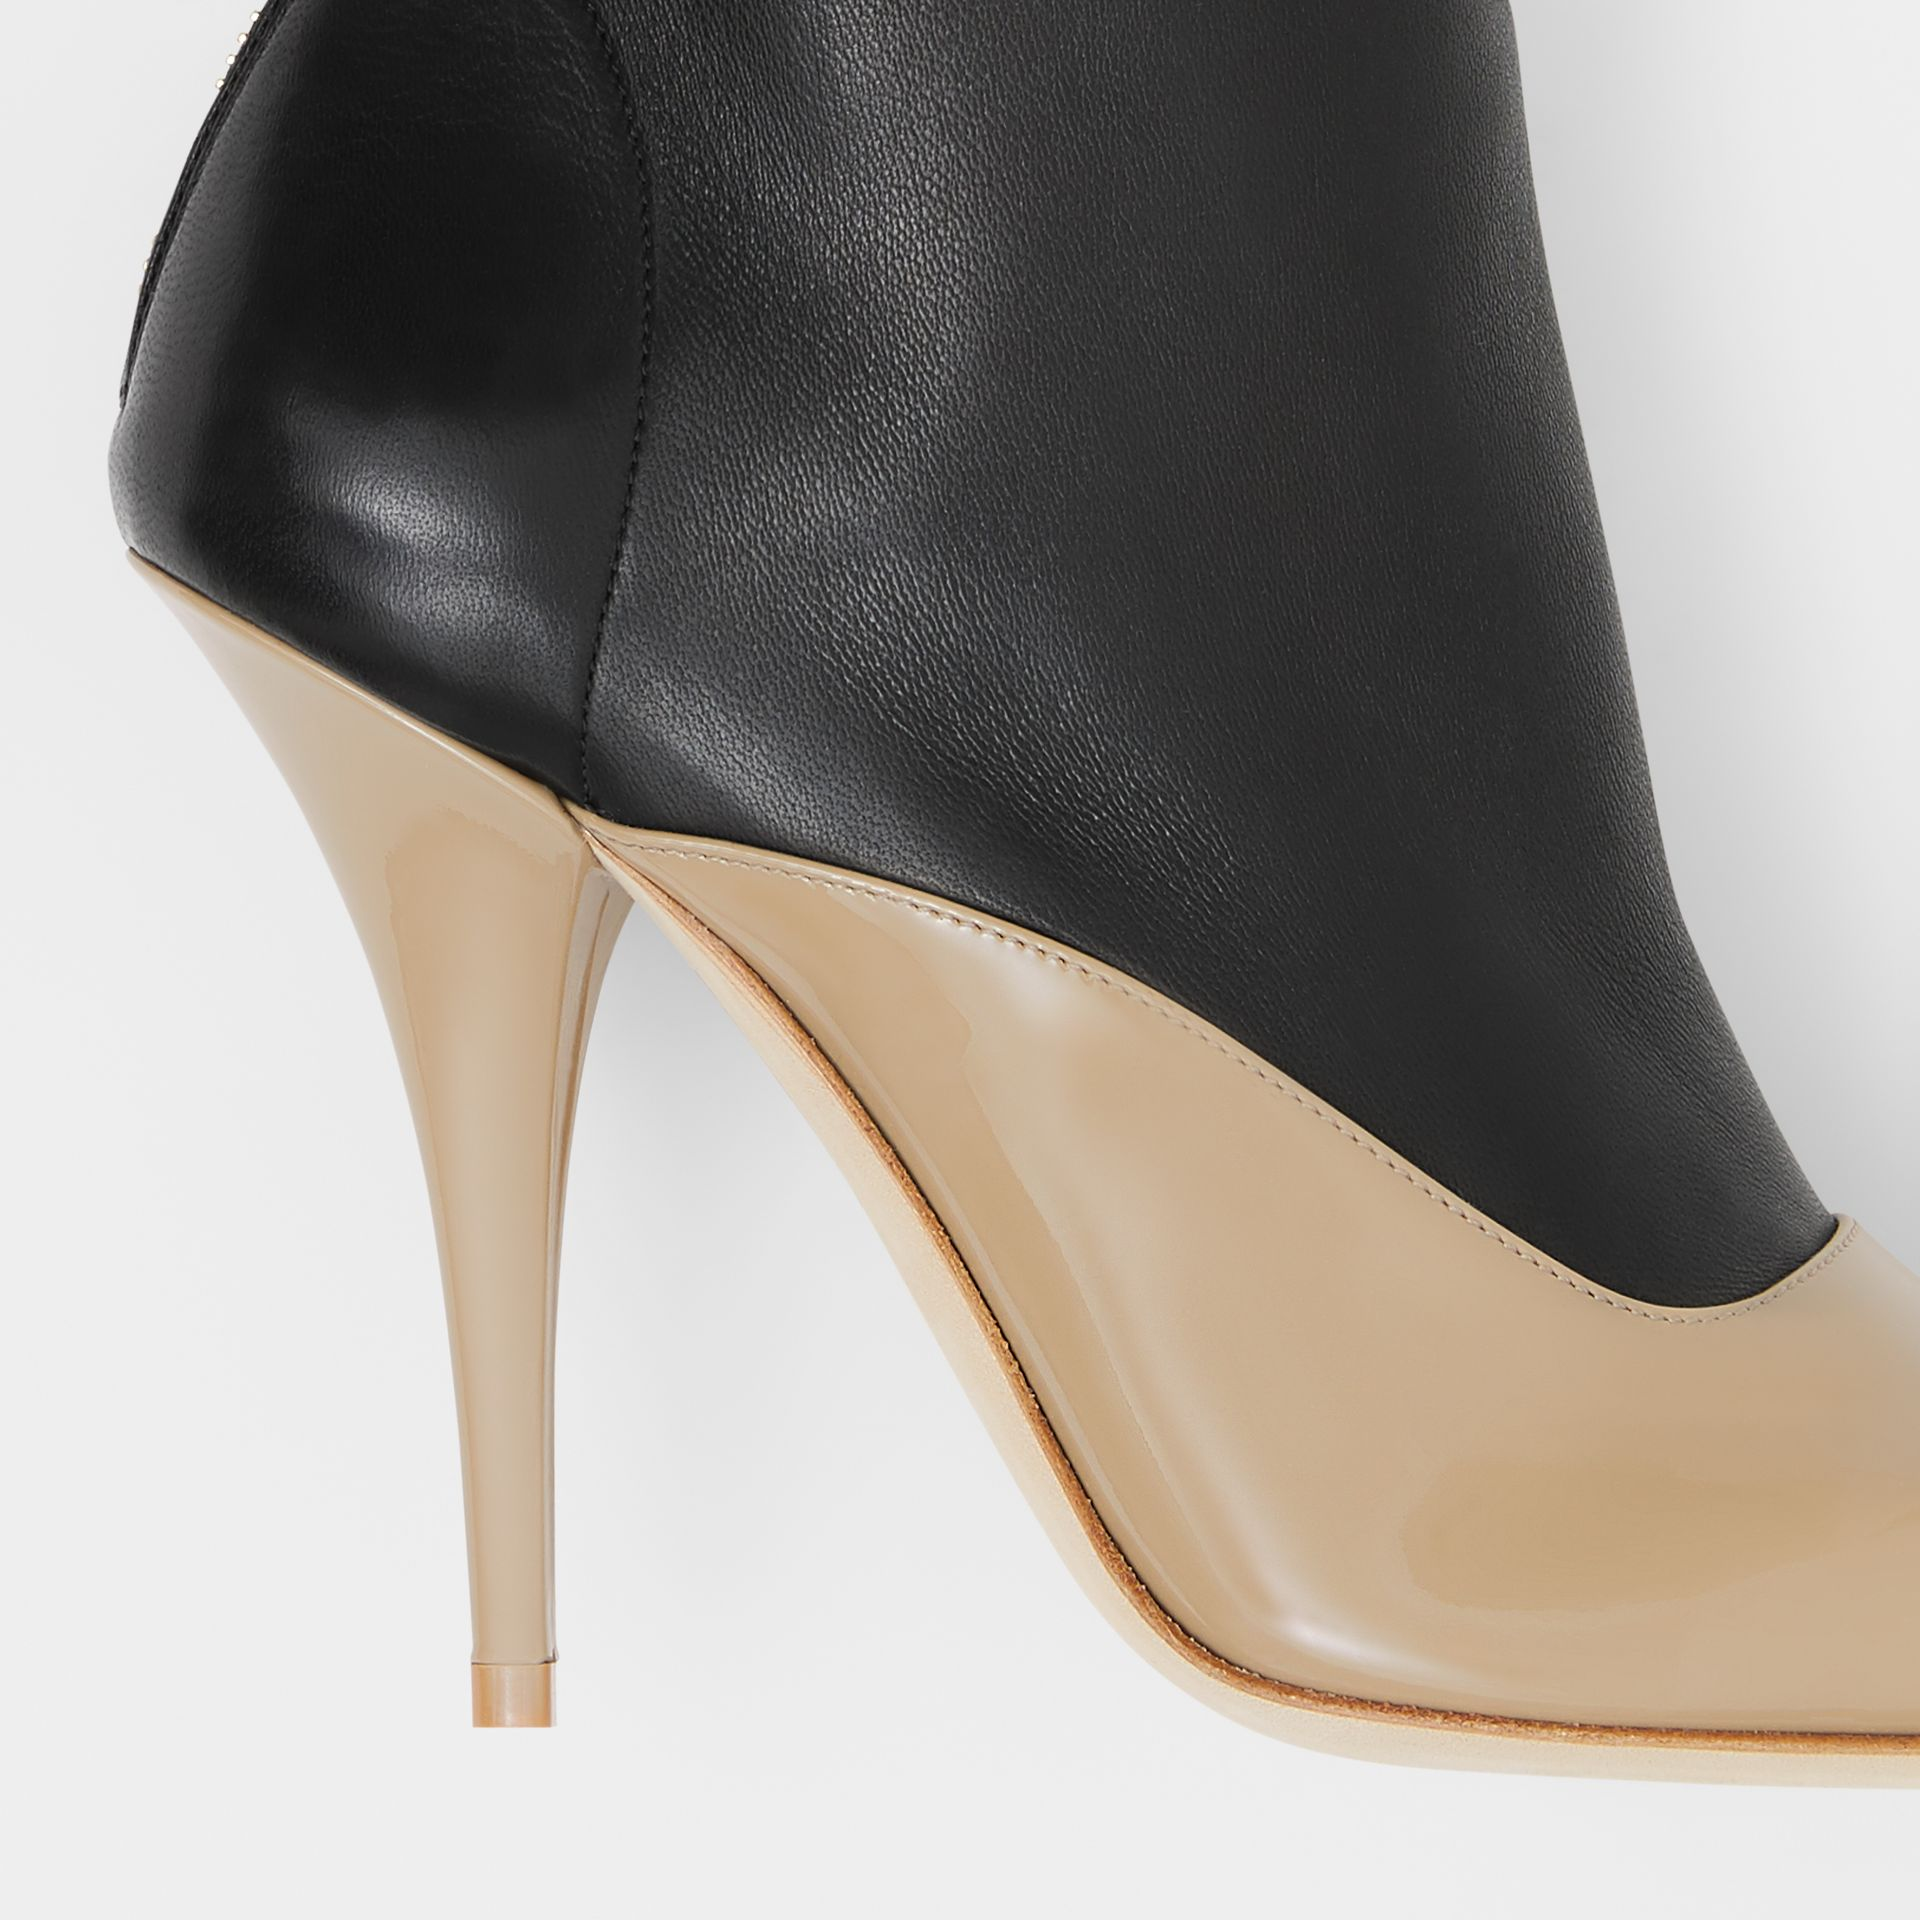 Two-tone Lambskin and Patent Leather Ankle Boots in Dark Honey/black - Women | Burberry Hong Kong S.A.R - gallery image 1